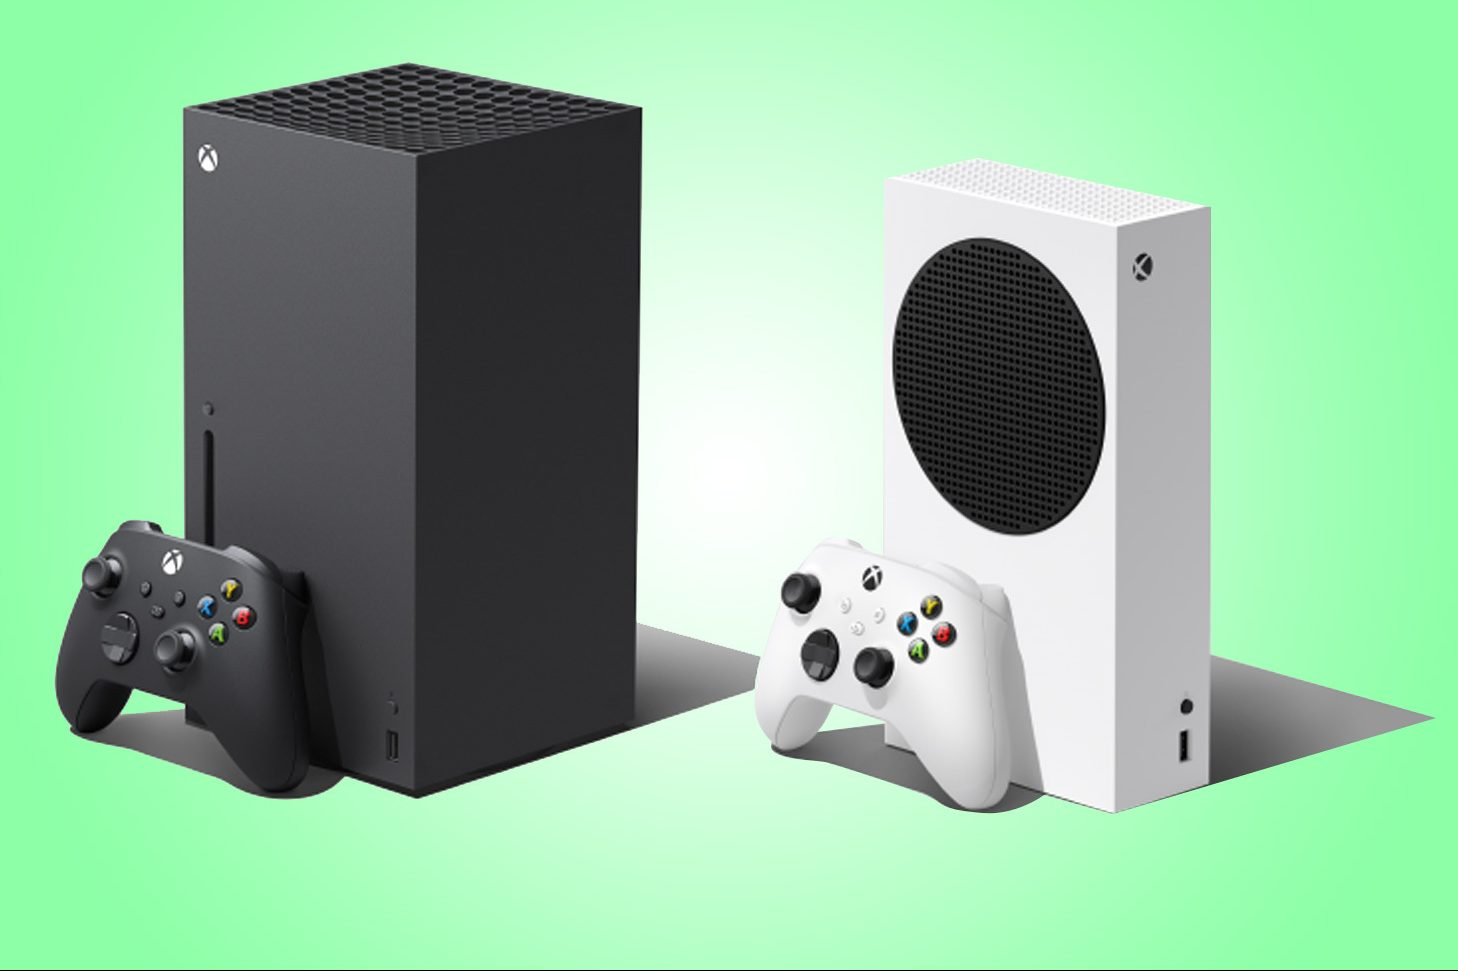 Desperate shoppers will this week get the chance to bag themselves an Xbox Series X (left) or Xbox Series S